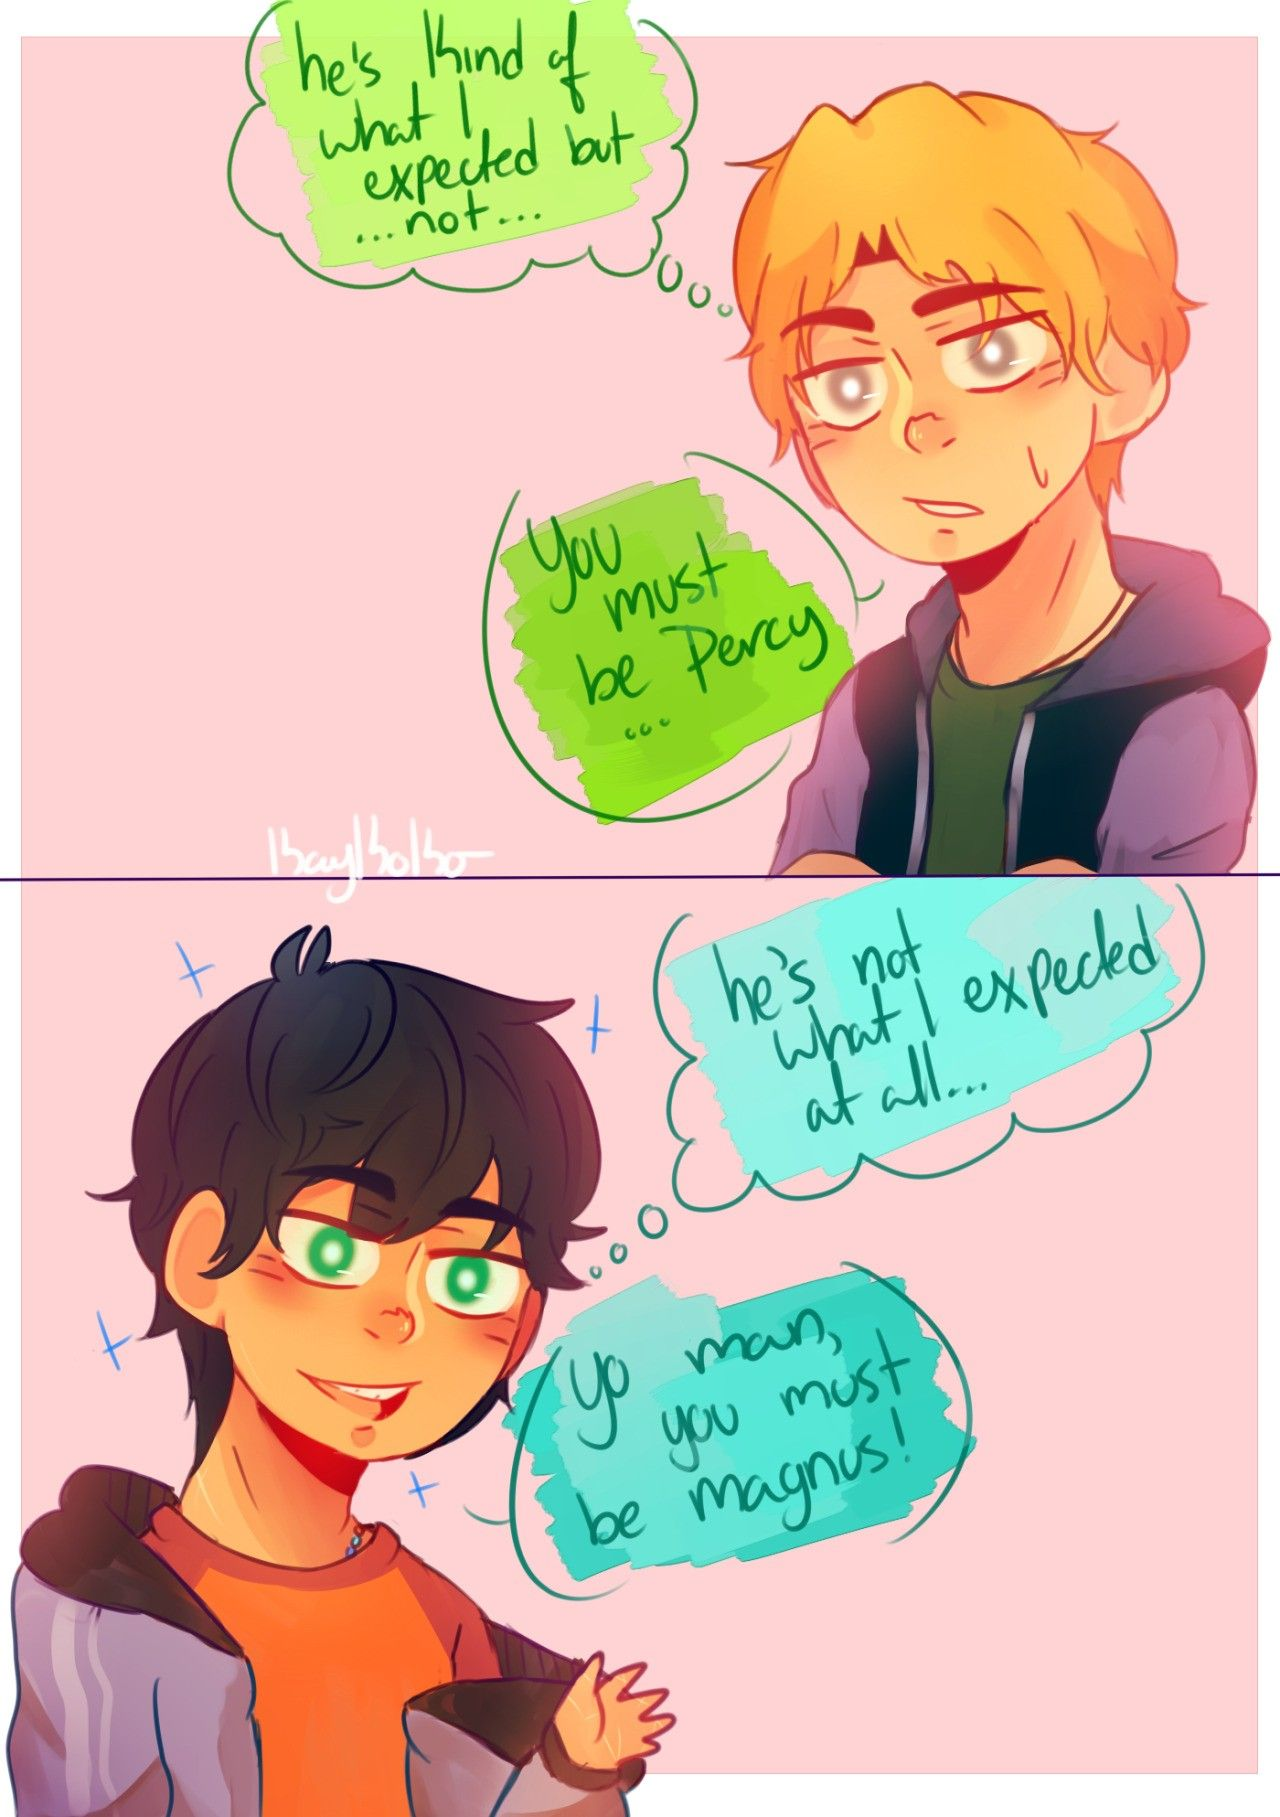 Heroes Of Olympus Magnus Chase Crossover Comic 1 3 Percy